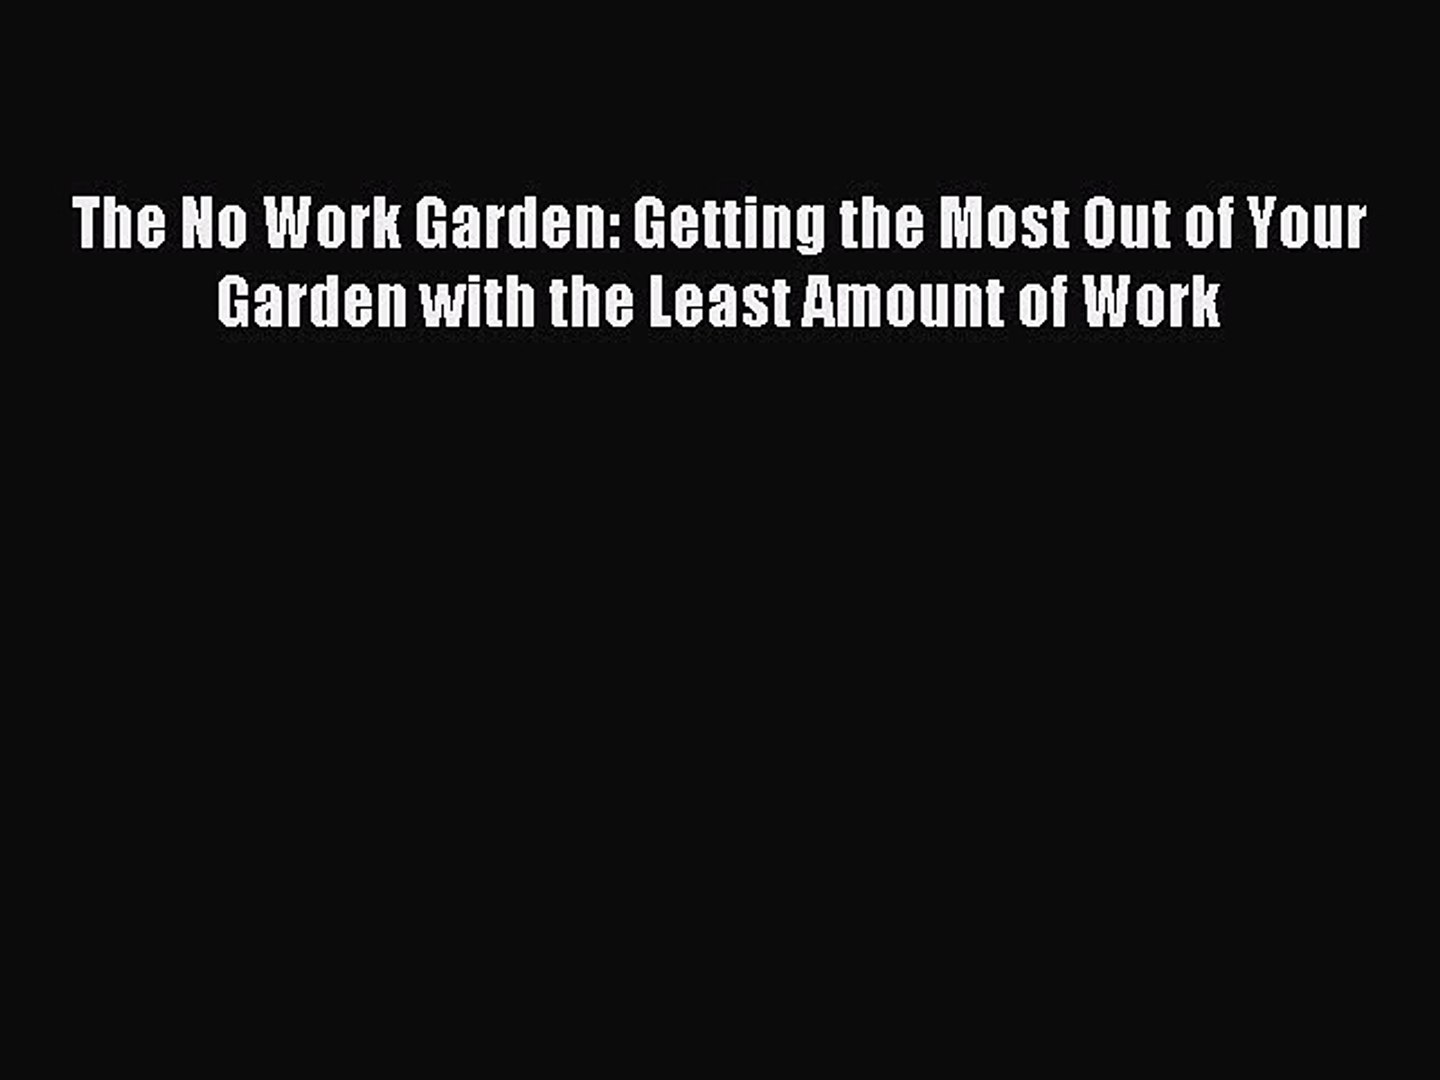 Read The No Work Garden: Getting the Most Out of Your Garden with the Least Amount of Work